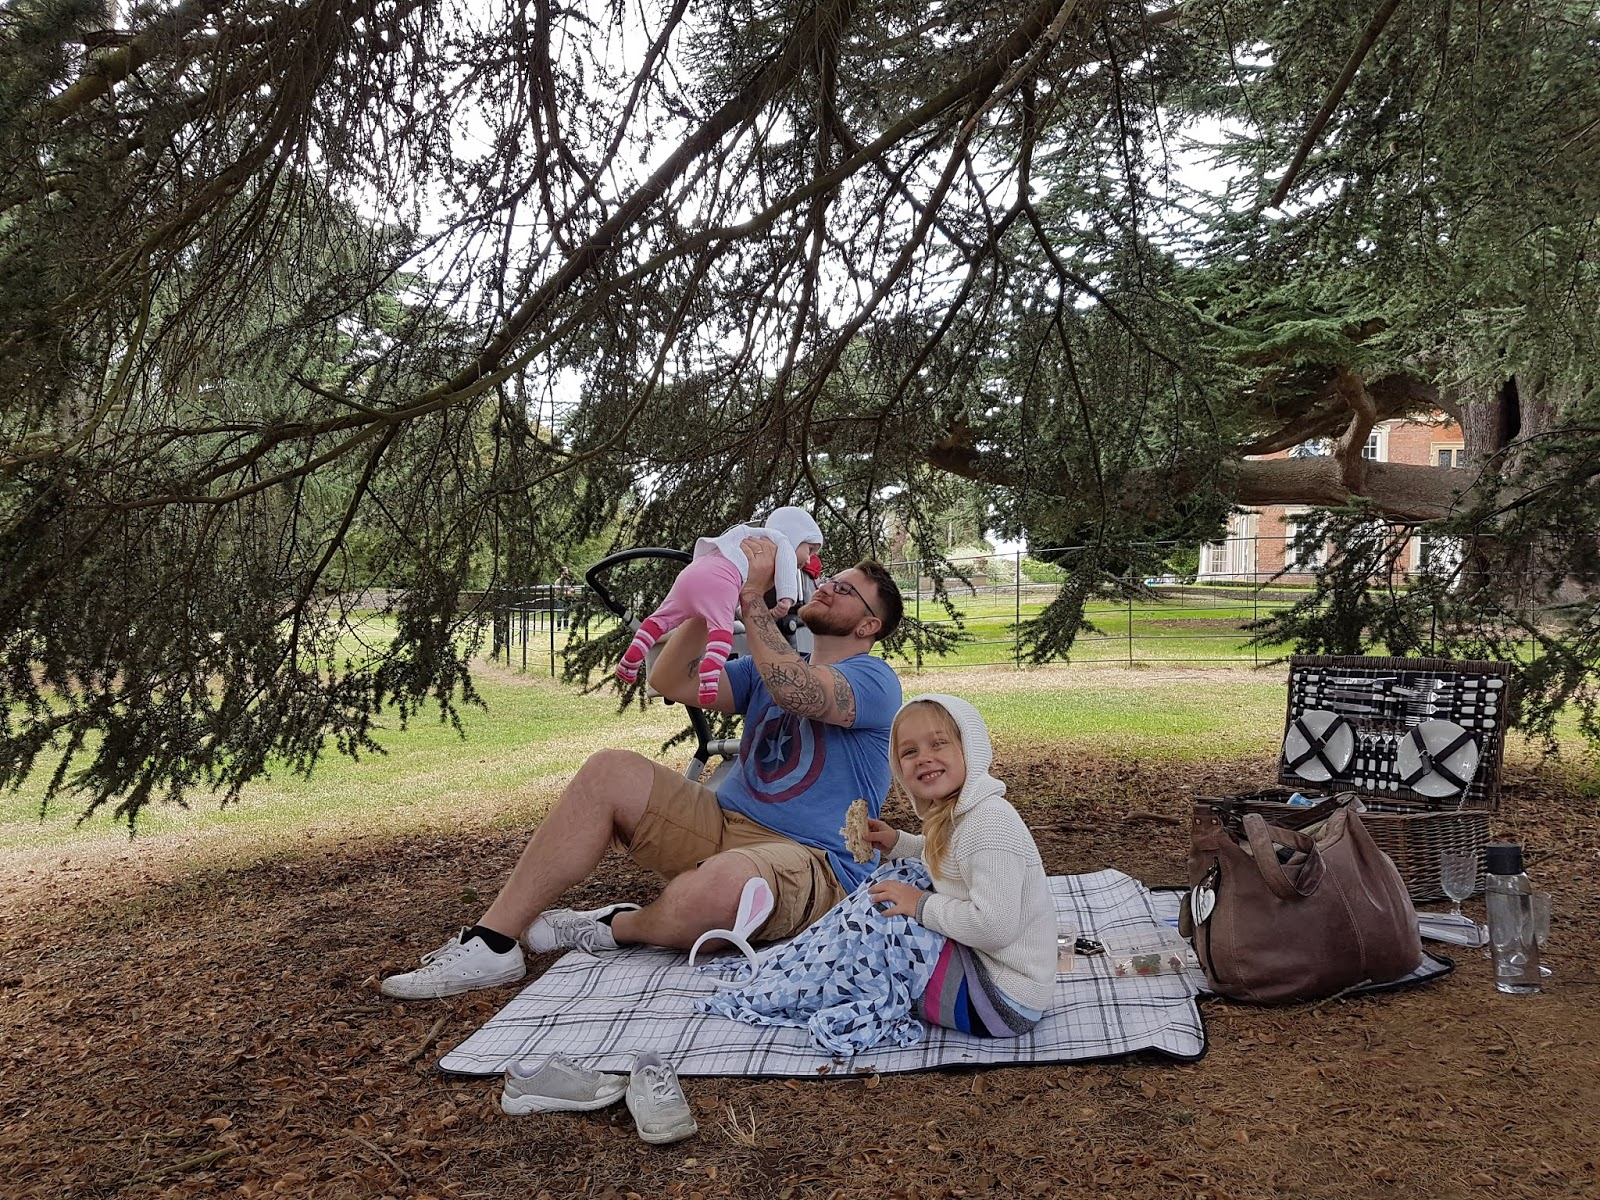 picnic under a tree